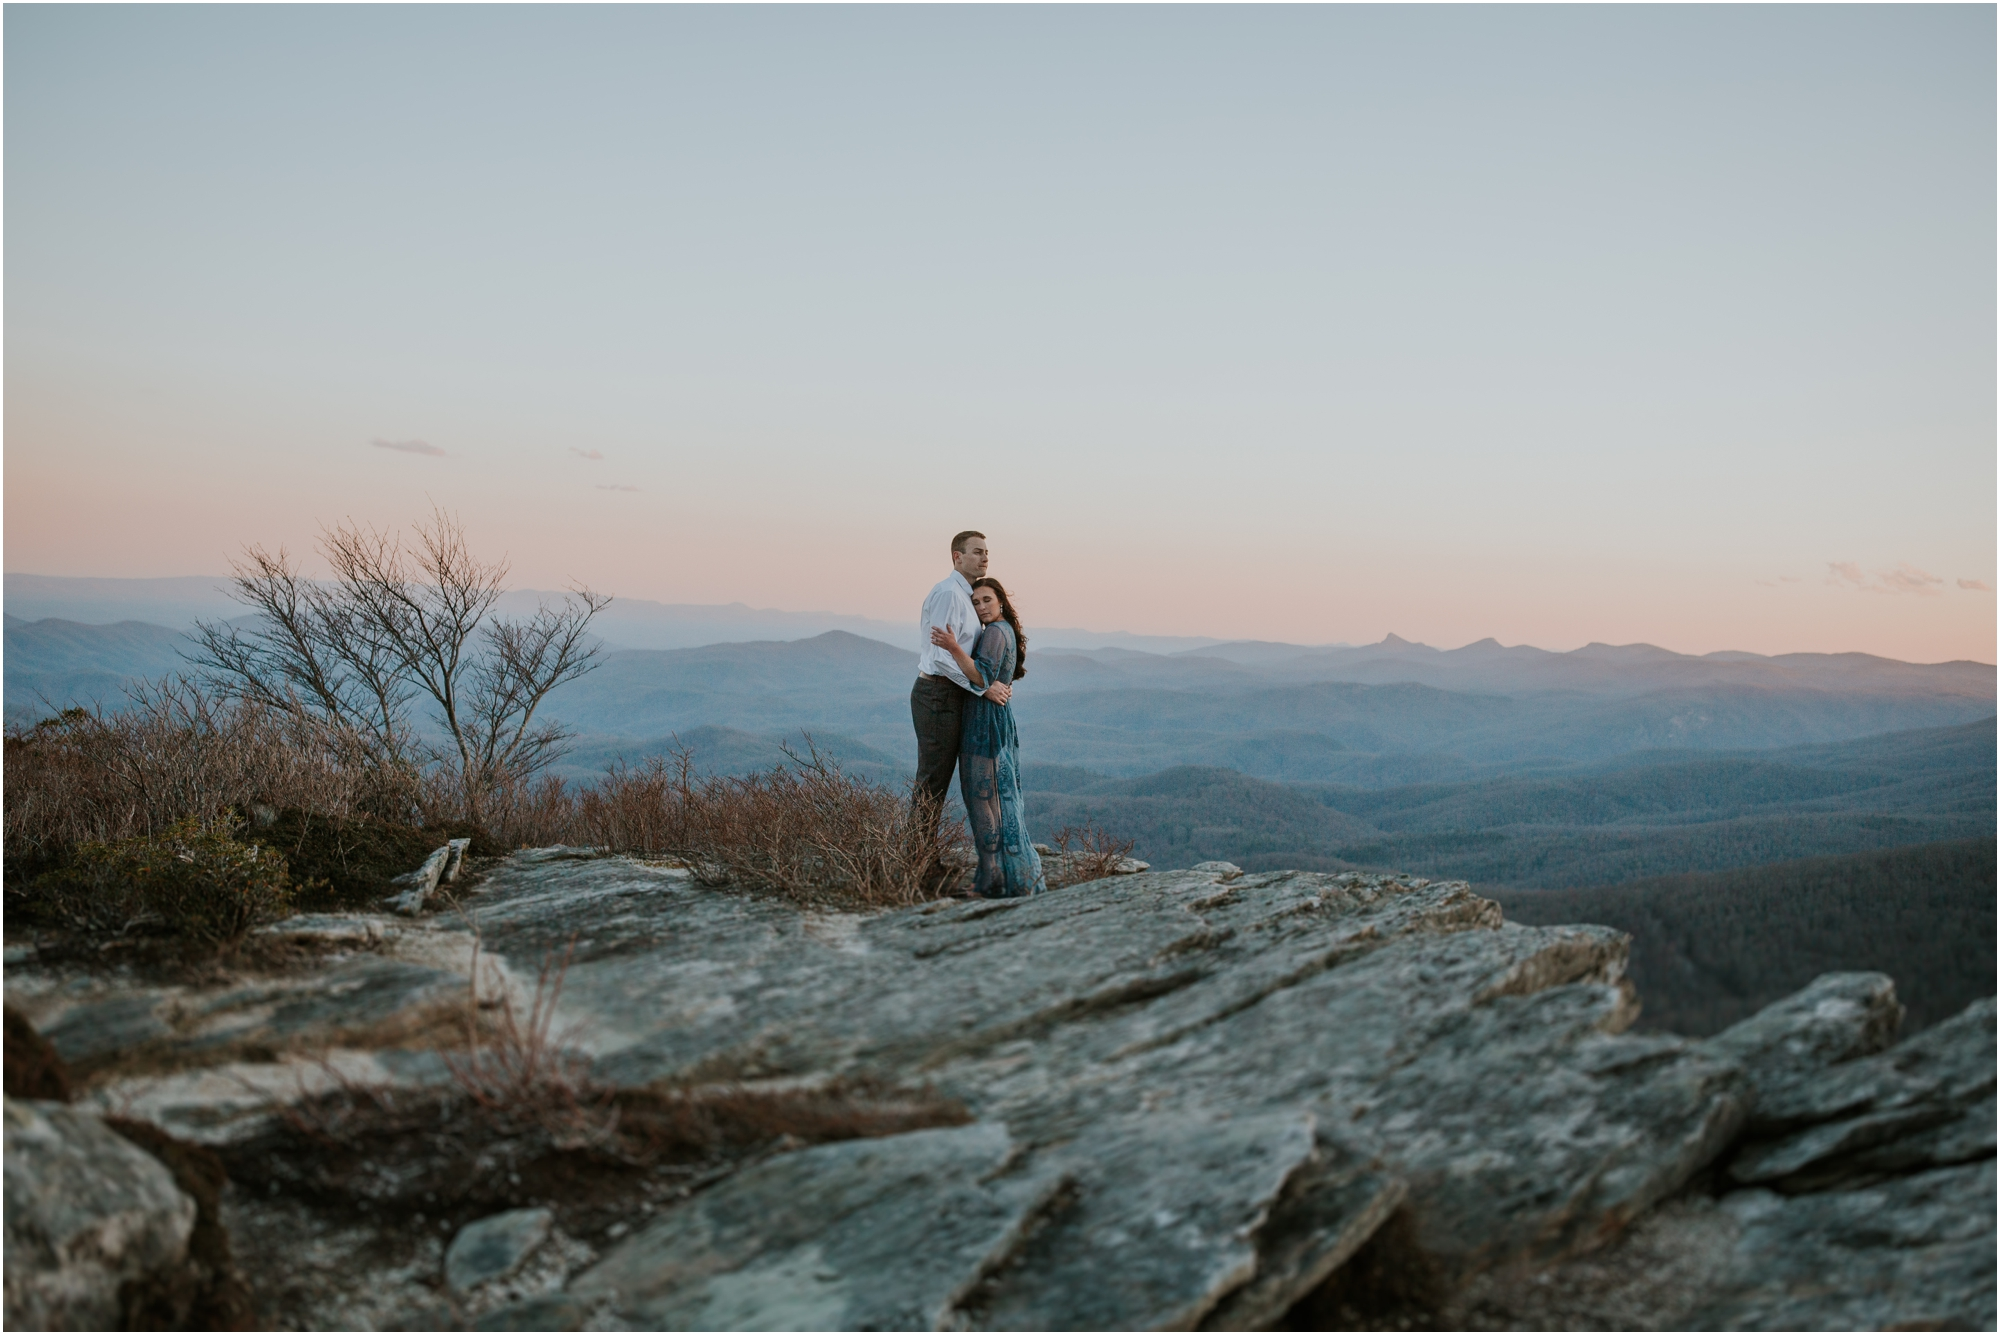 blue-ridge-parkway-engagement-session-north-carolina-boone-blowing-rock-northeast-tennessee-katy-sergent-photography_0028.jpg